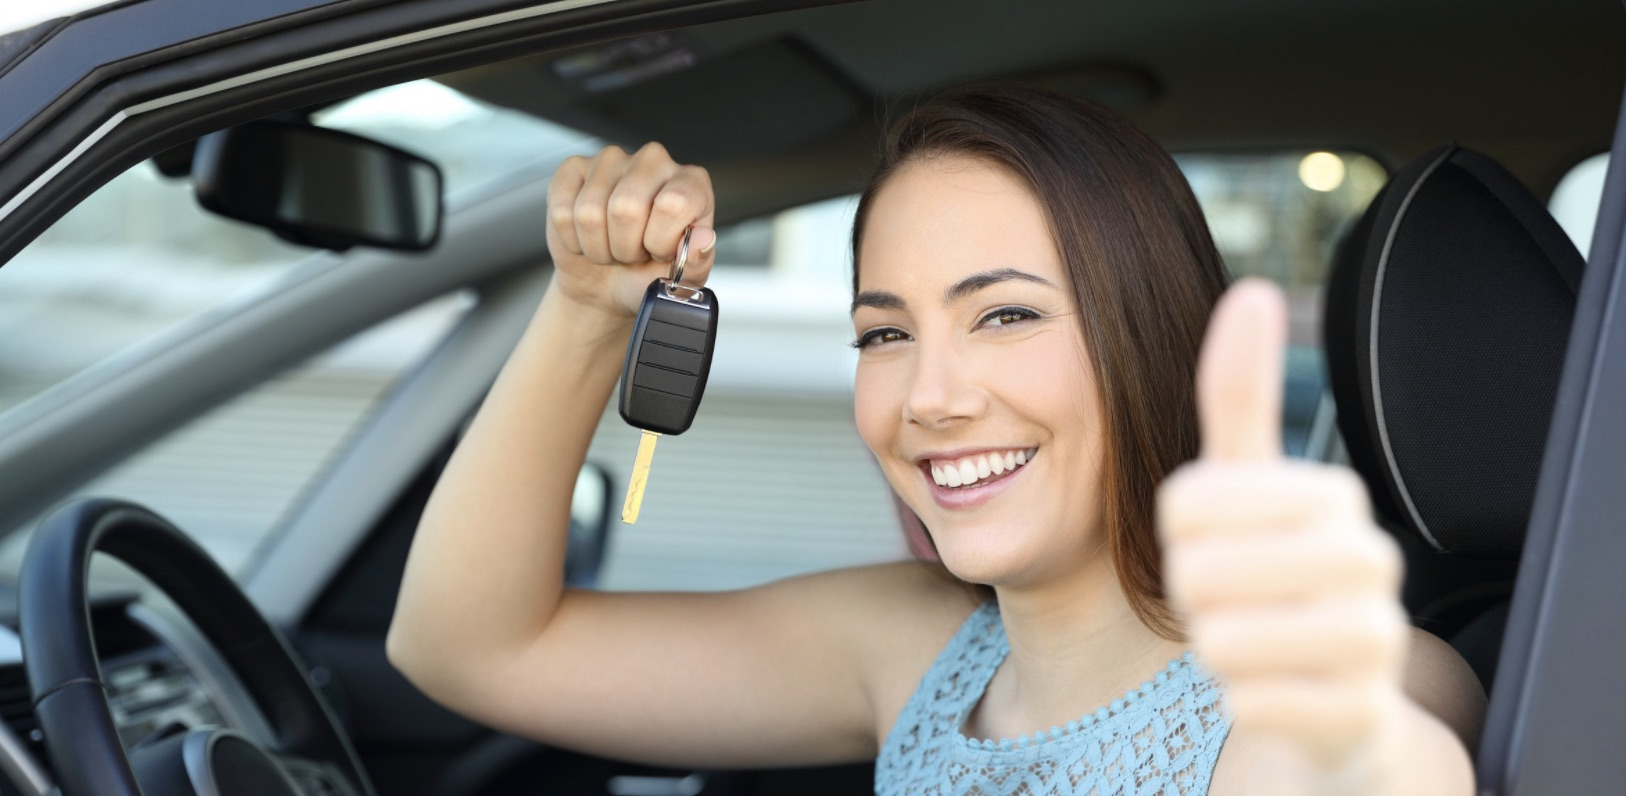 Young professional woman showing her excitement about receiving a car loan from Sansone Jr's NJ Auto Lending.